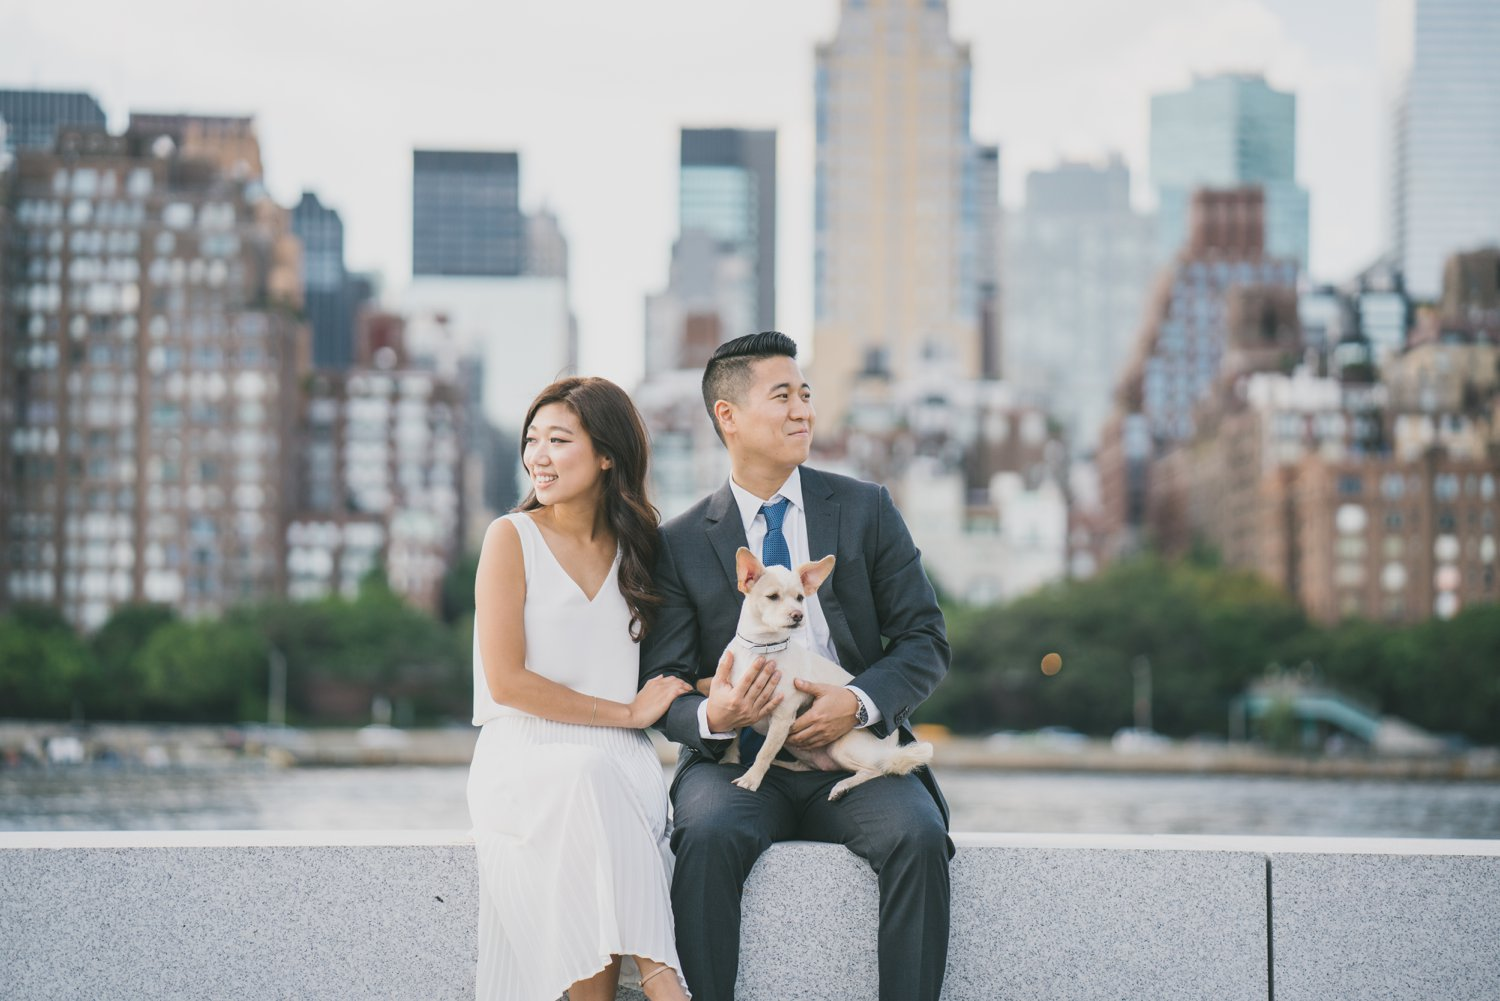 64NYC-NJ-ENGAGEMENT-PHOTOGRAPHY-BY-INTOTHESTORY-MOO-JAE.JPG